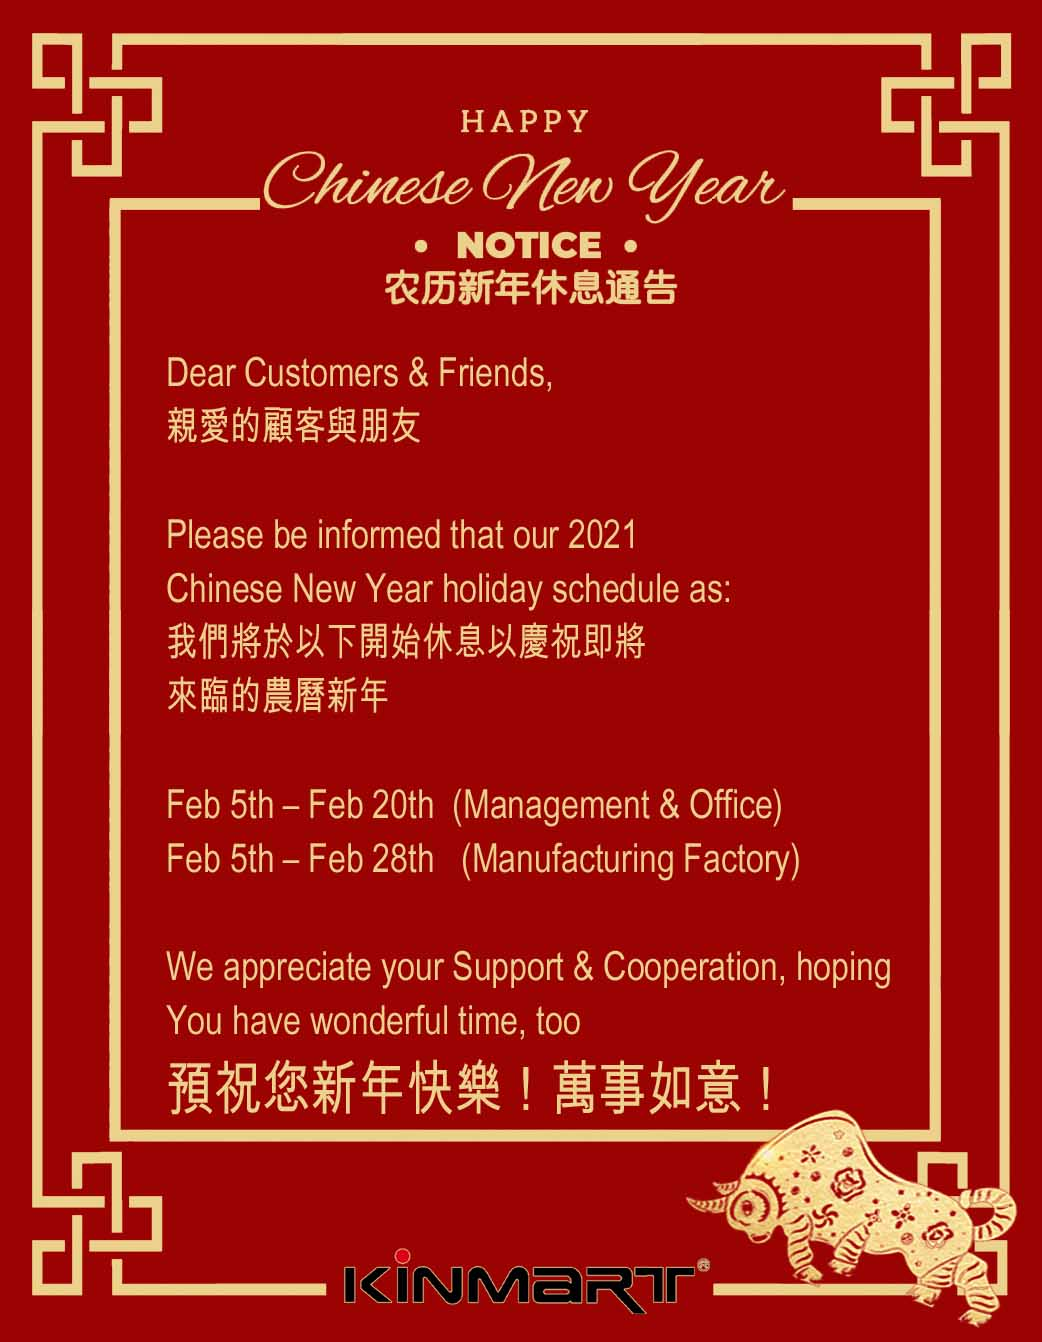 Happy Chinese New Year 2021 from KINMART